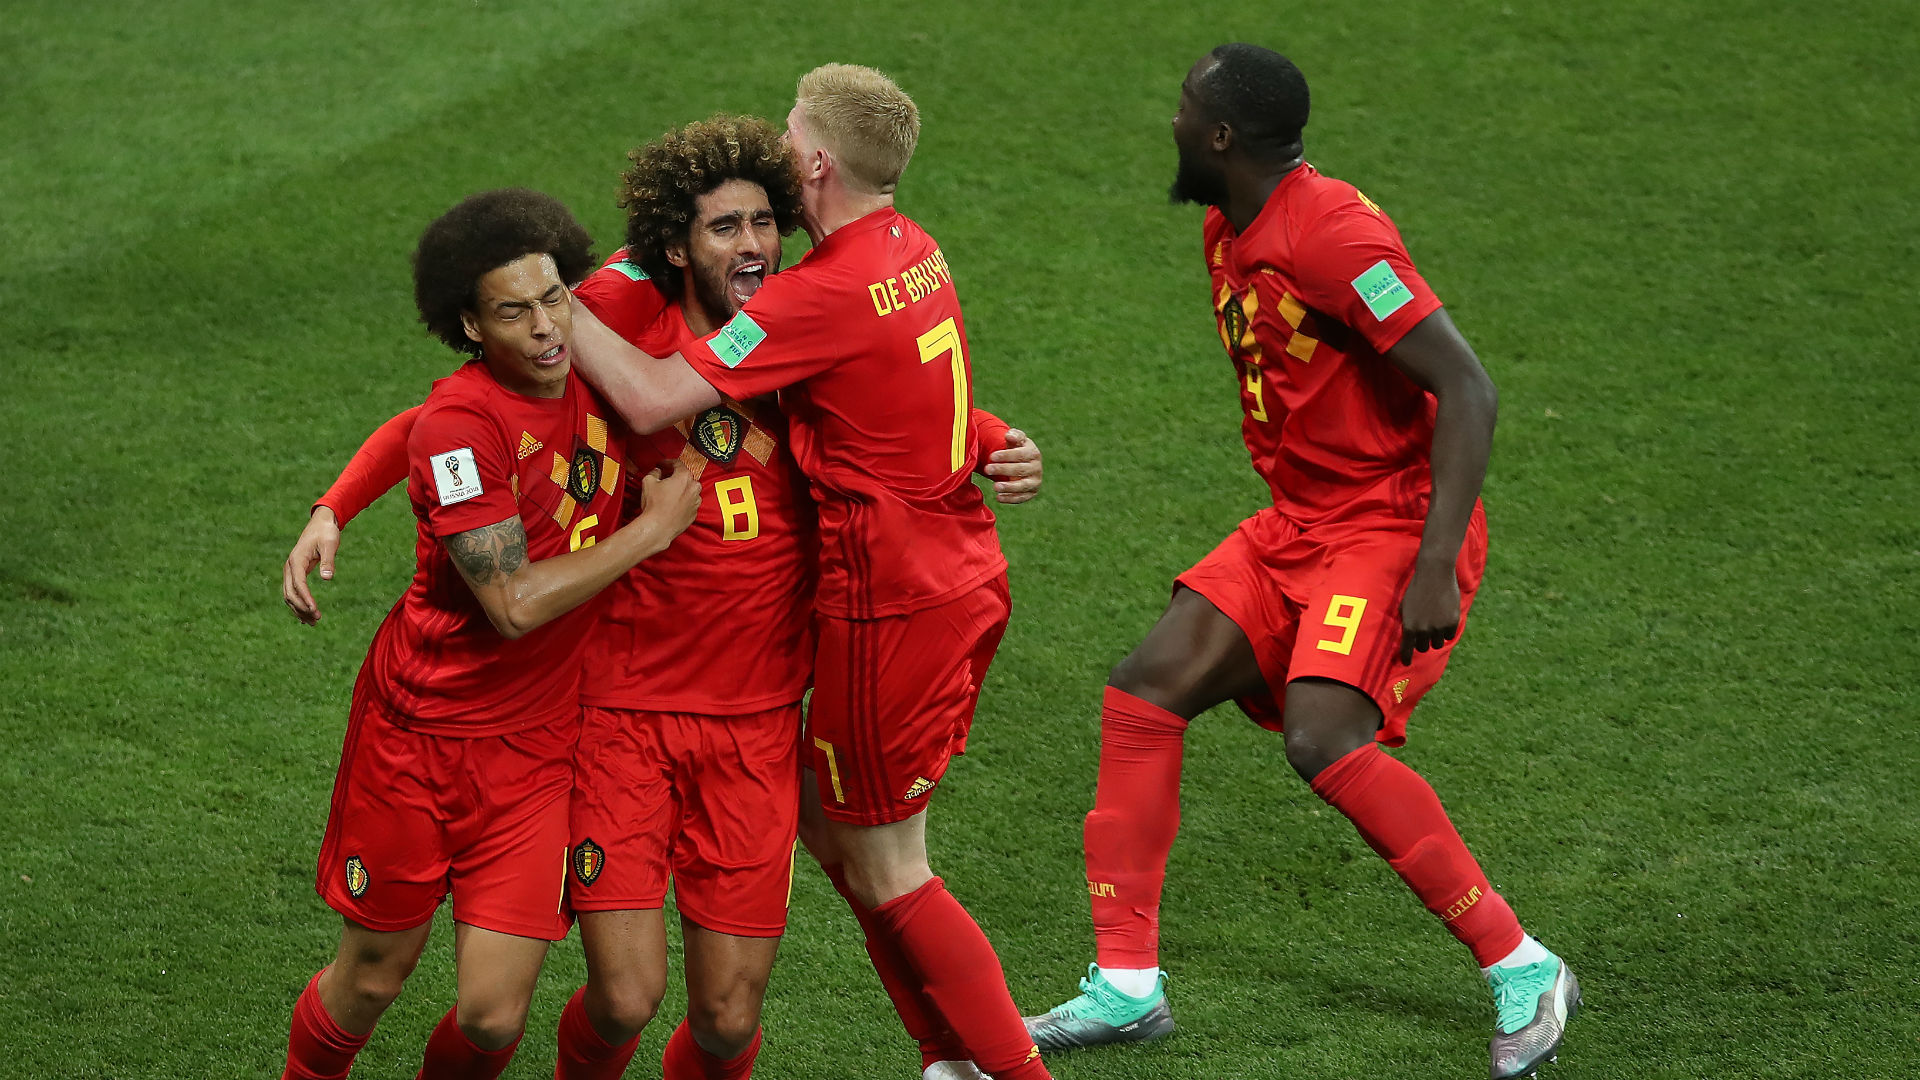 Brazil And Belgium Name Starting Lineups For World Cup Quarter-Final